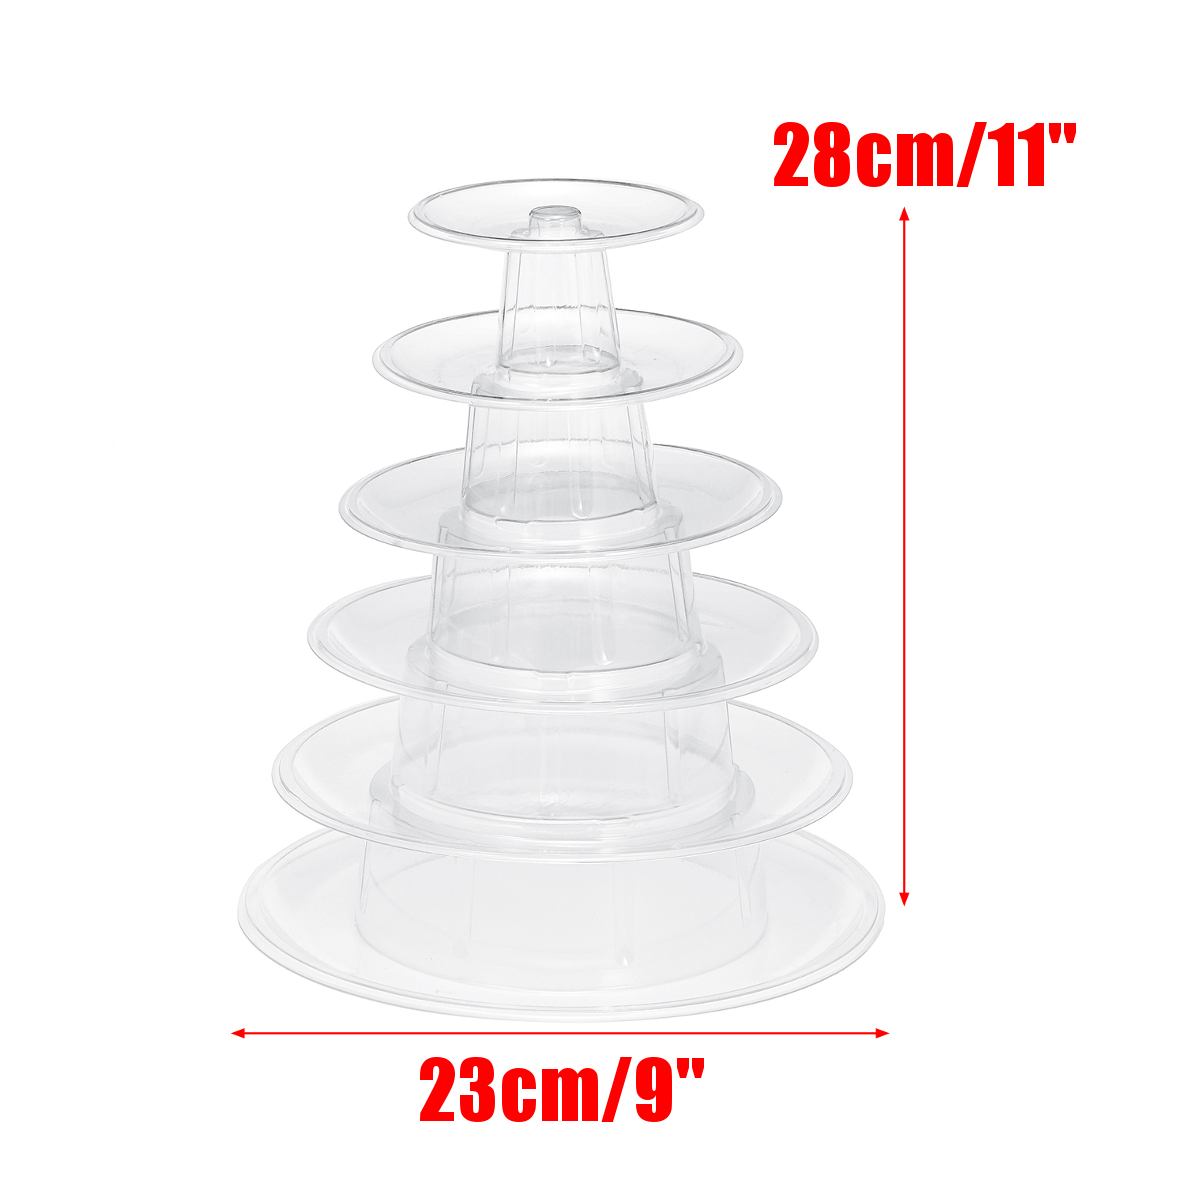 6 Tier Clear Round Macaron Tower Display Stand Pyramid Rack Bridal Wedding Party Decorations